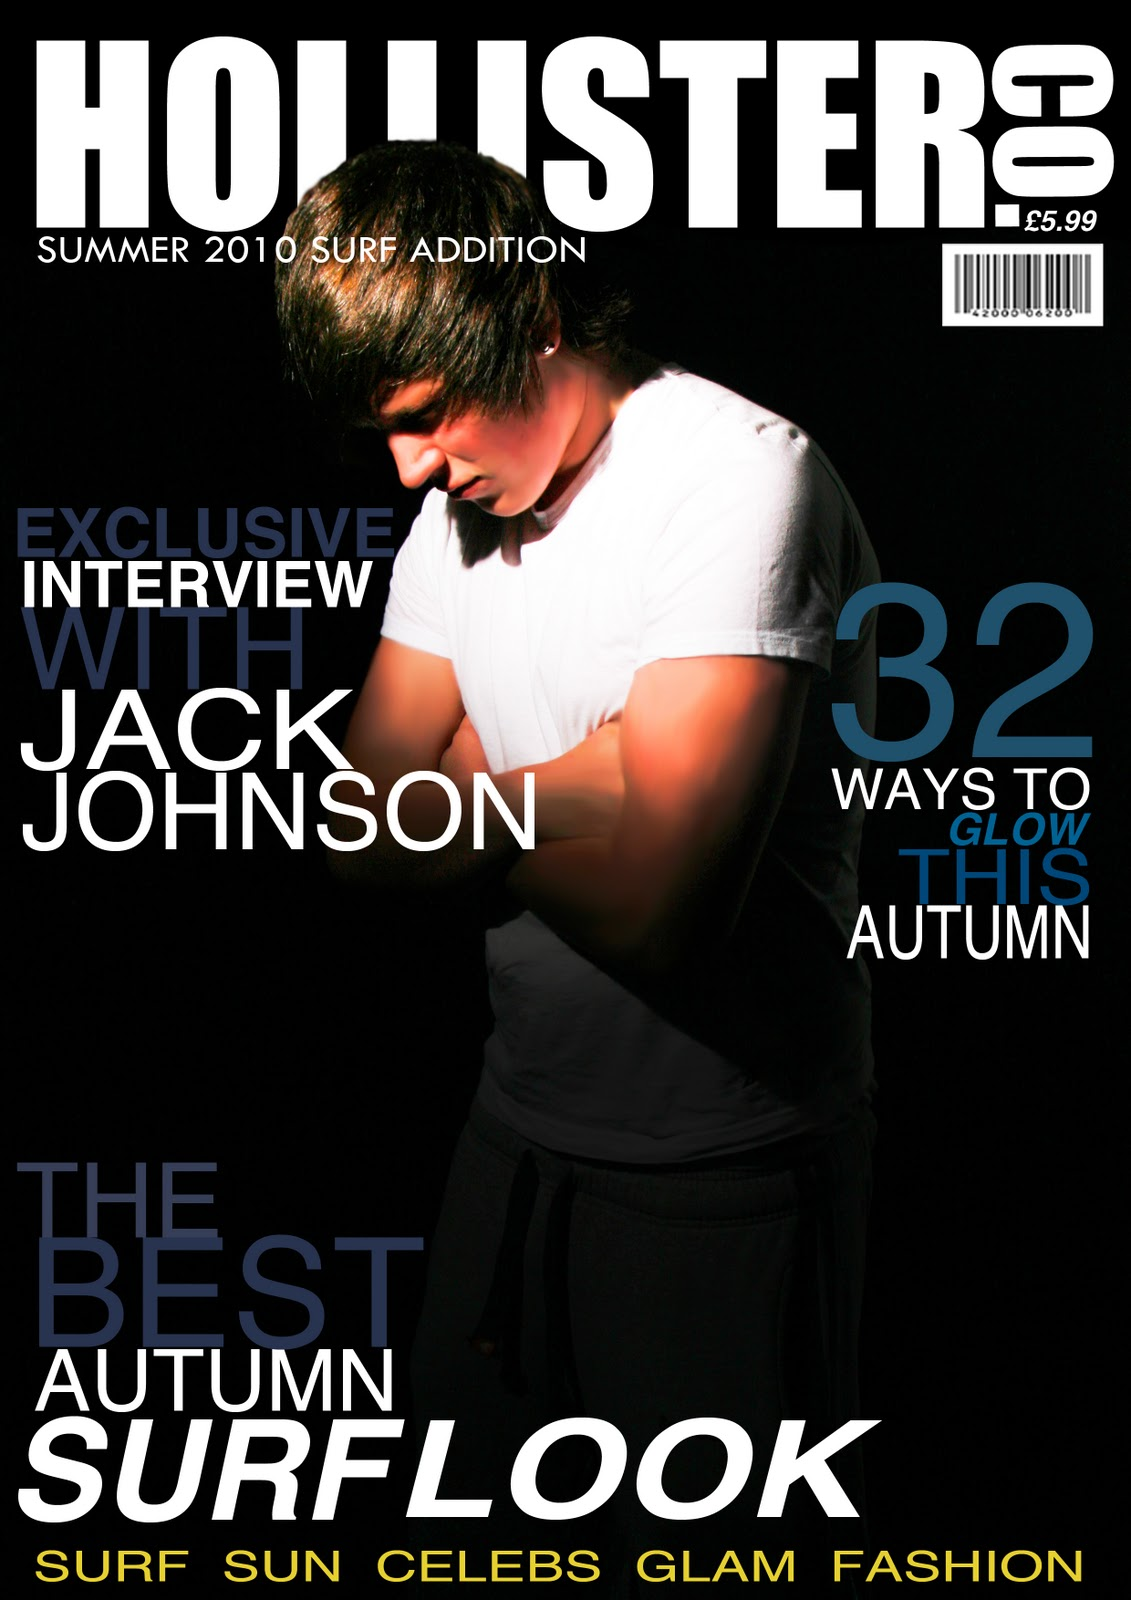 Magazine cover design brief